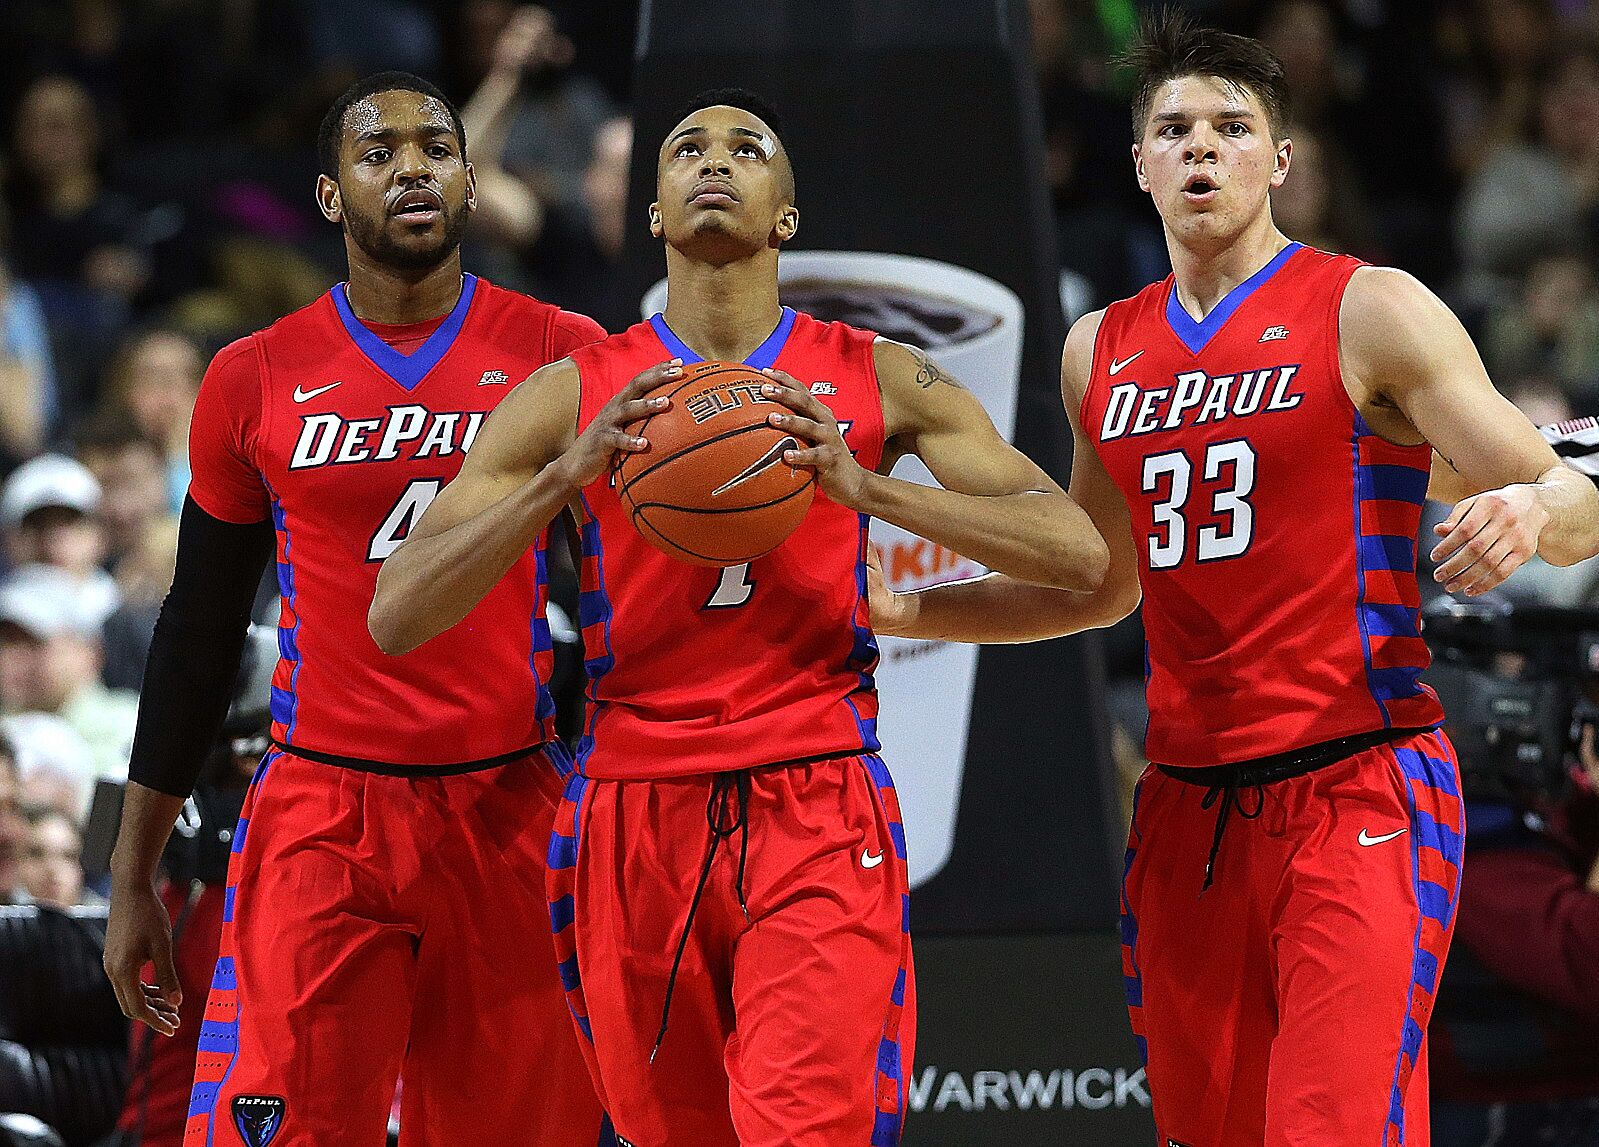 DePaul Basketball: 2019-2020 season preview for Blue Demons